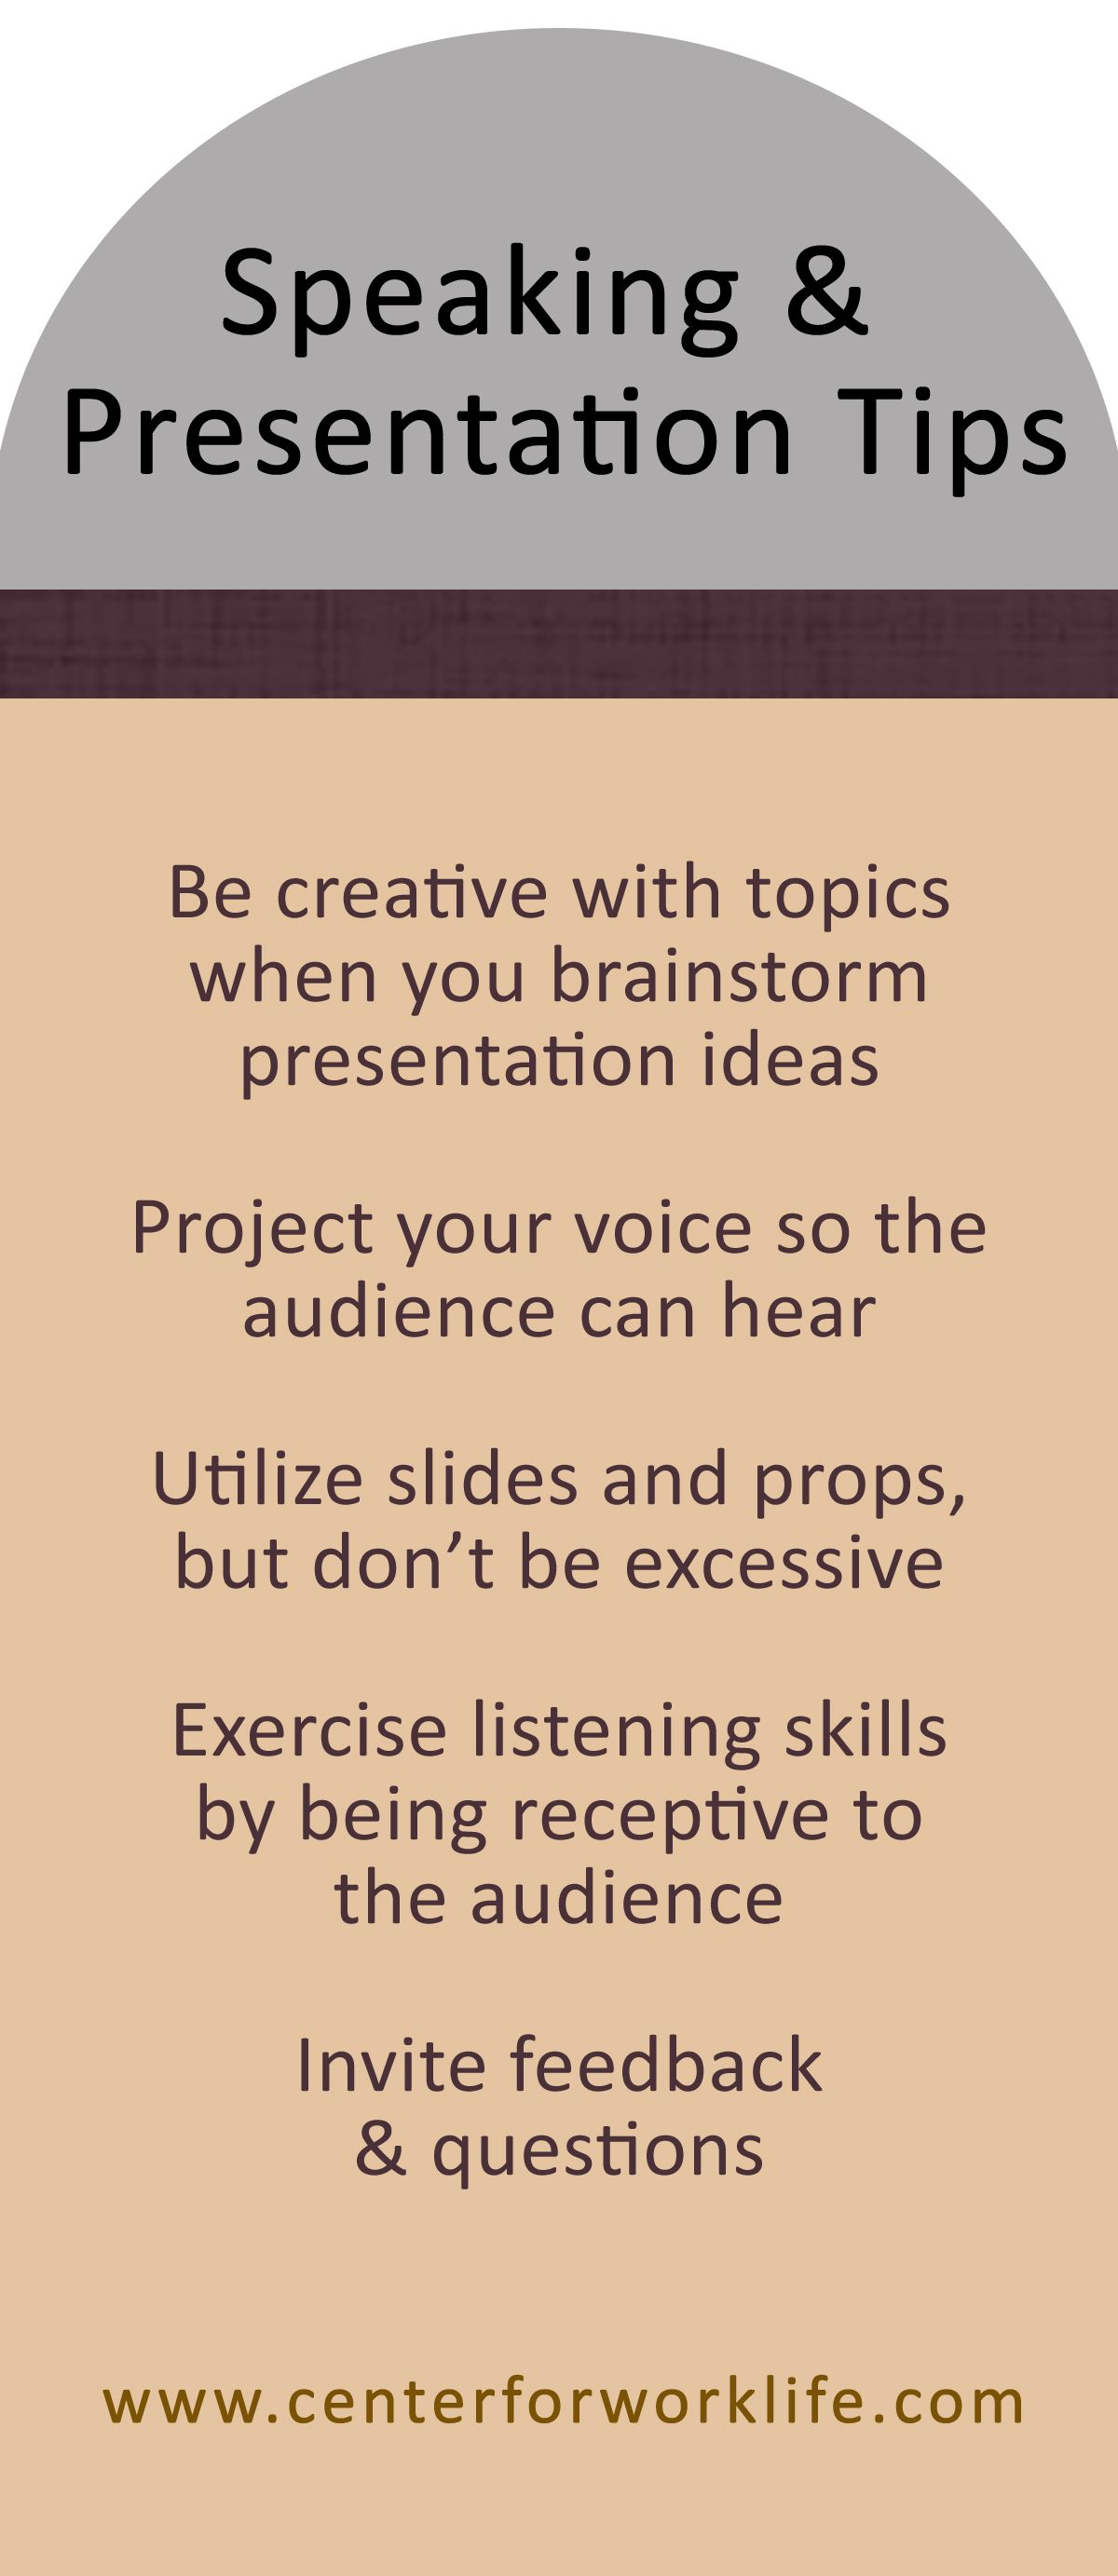 speaking and presentation tips for leaders #leadership #worktips